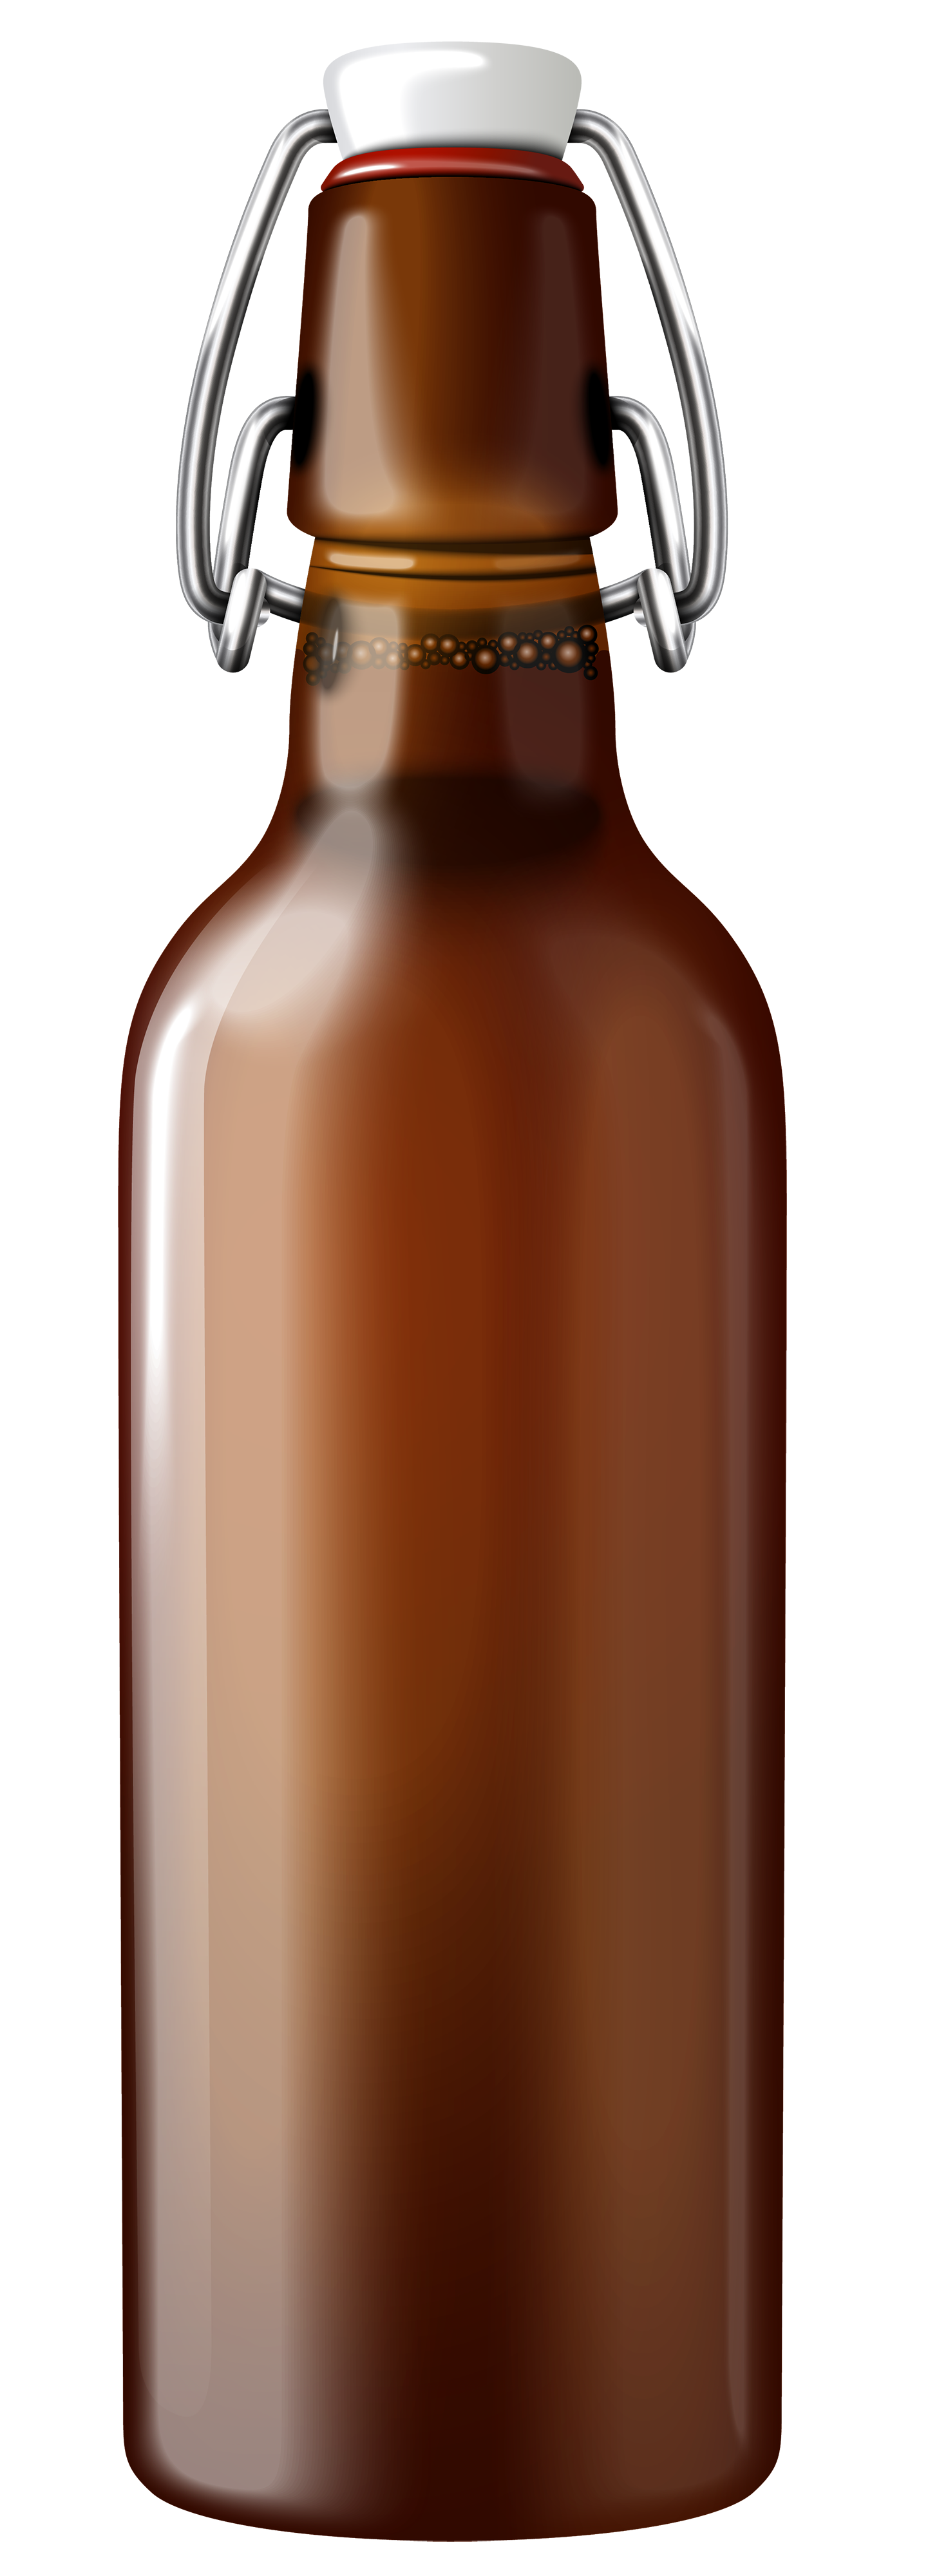 collection of clipart. Beer bottle png